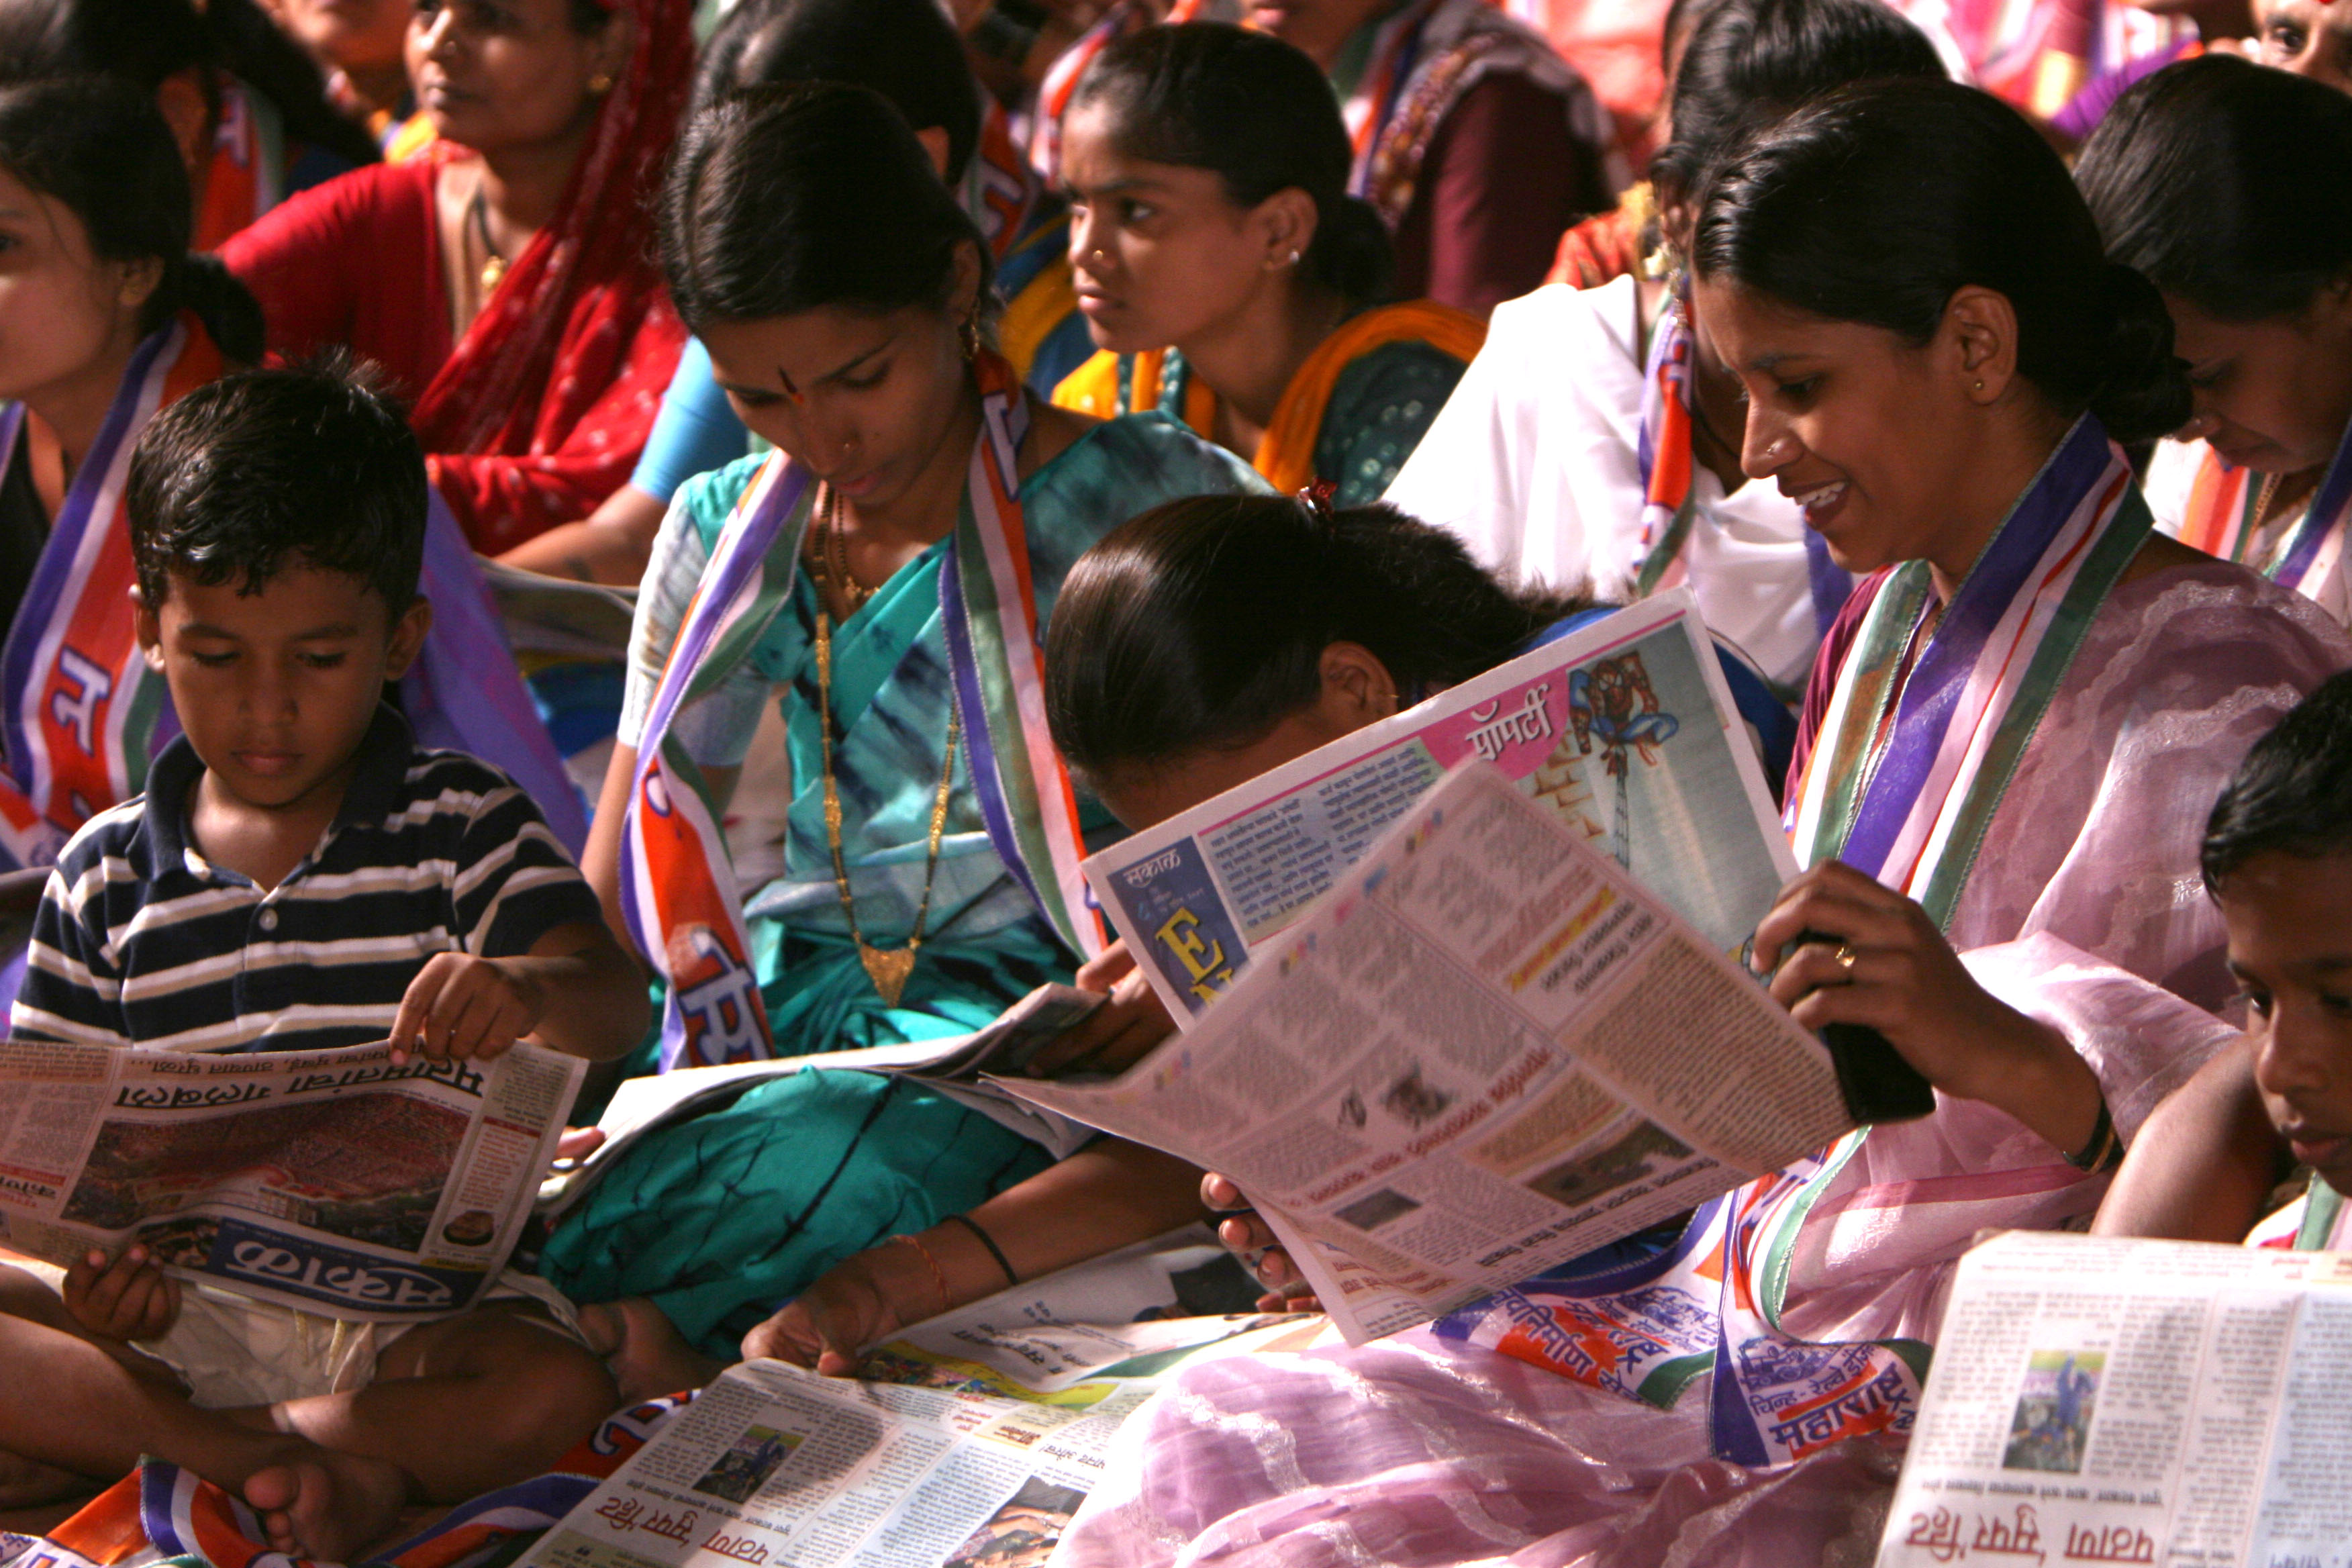 Indian Voters are reading regional news paper at  MNS (Maharastra Nava Nirman Sena)rally  in west Mumbai constituency  in the western Indian City of Mumbai on 25th April 2009.